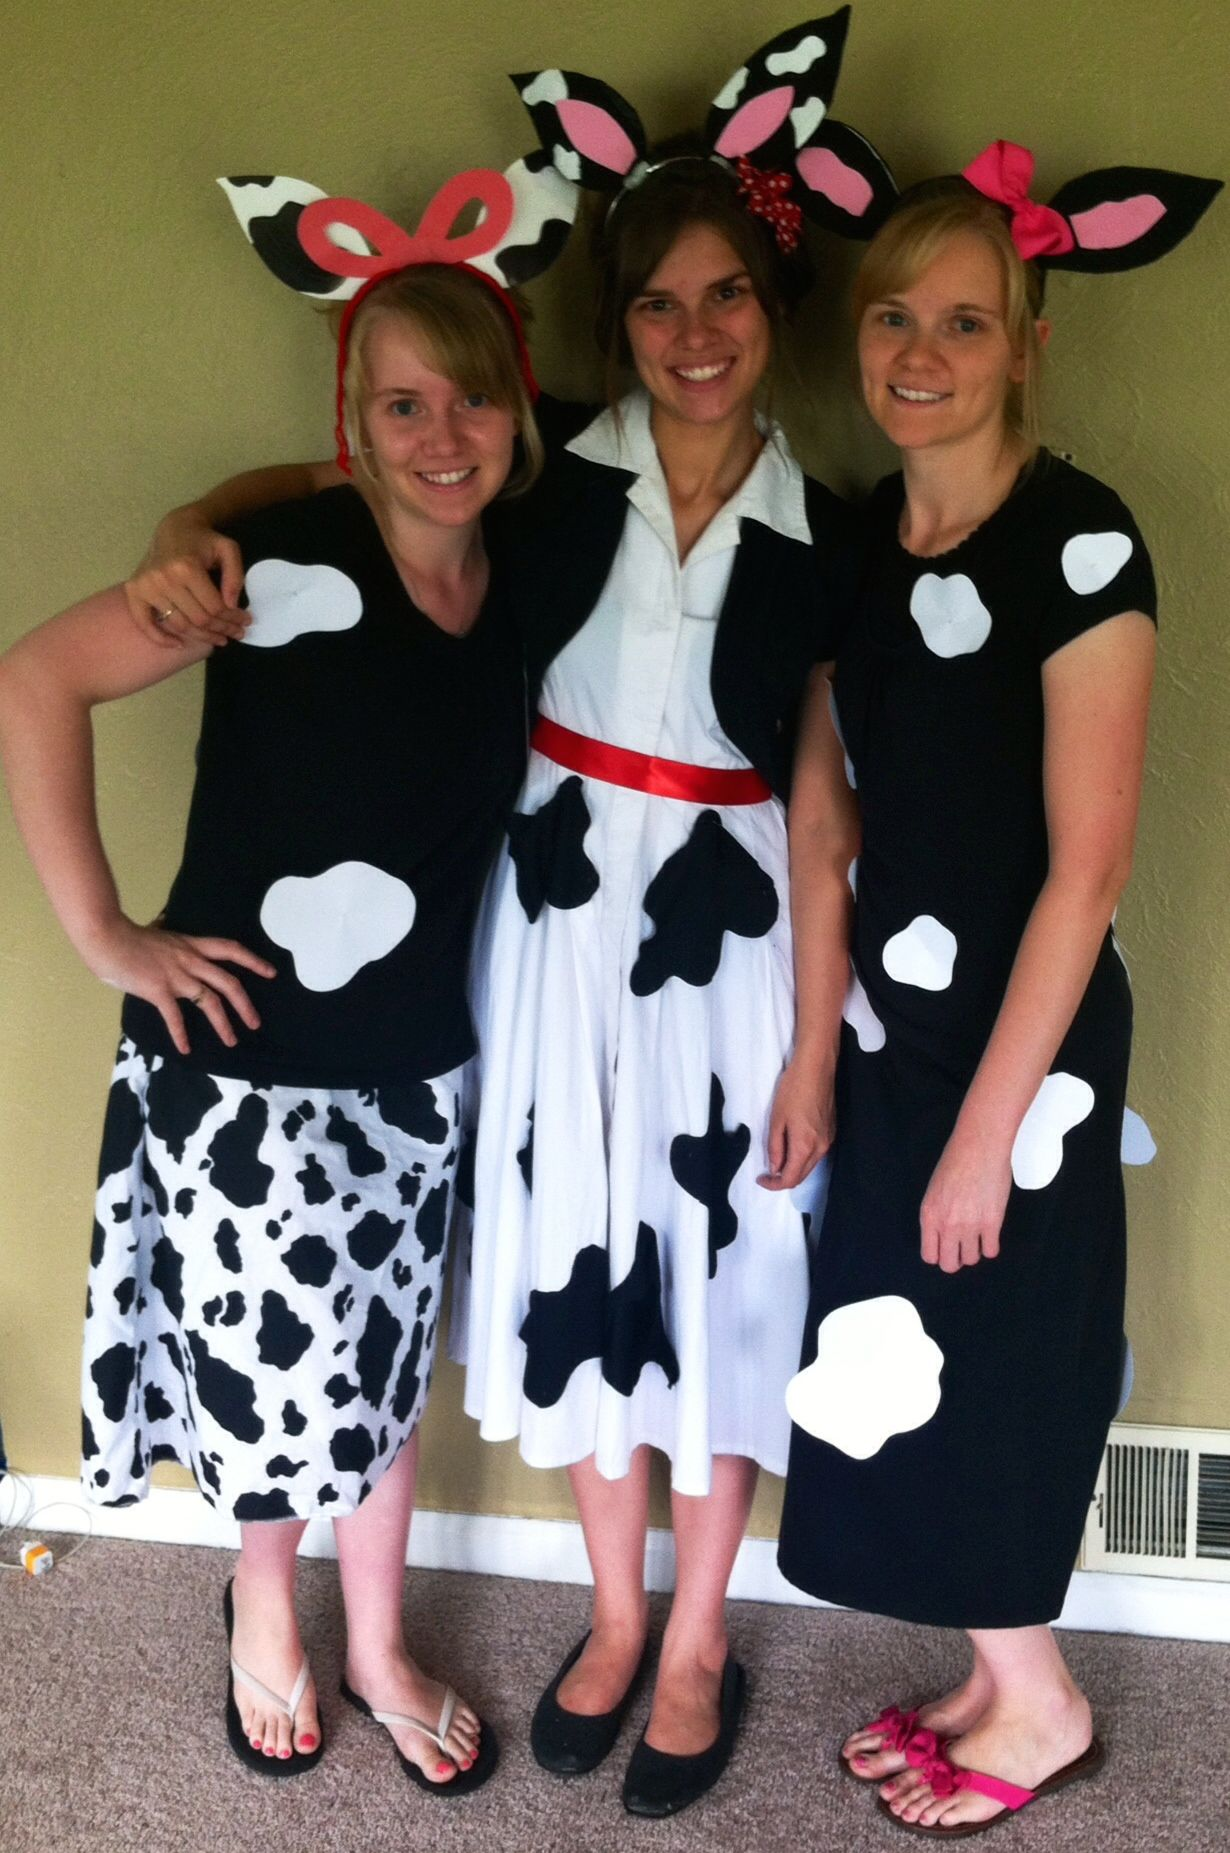 graphic regarding Cow Appreciation Day Printable Costume known as Pin upon Chick-fil-A Cow Working day!